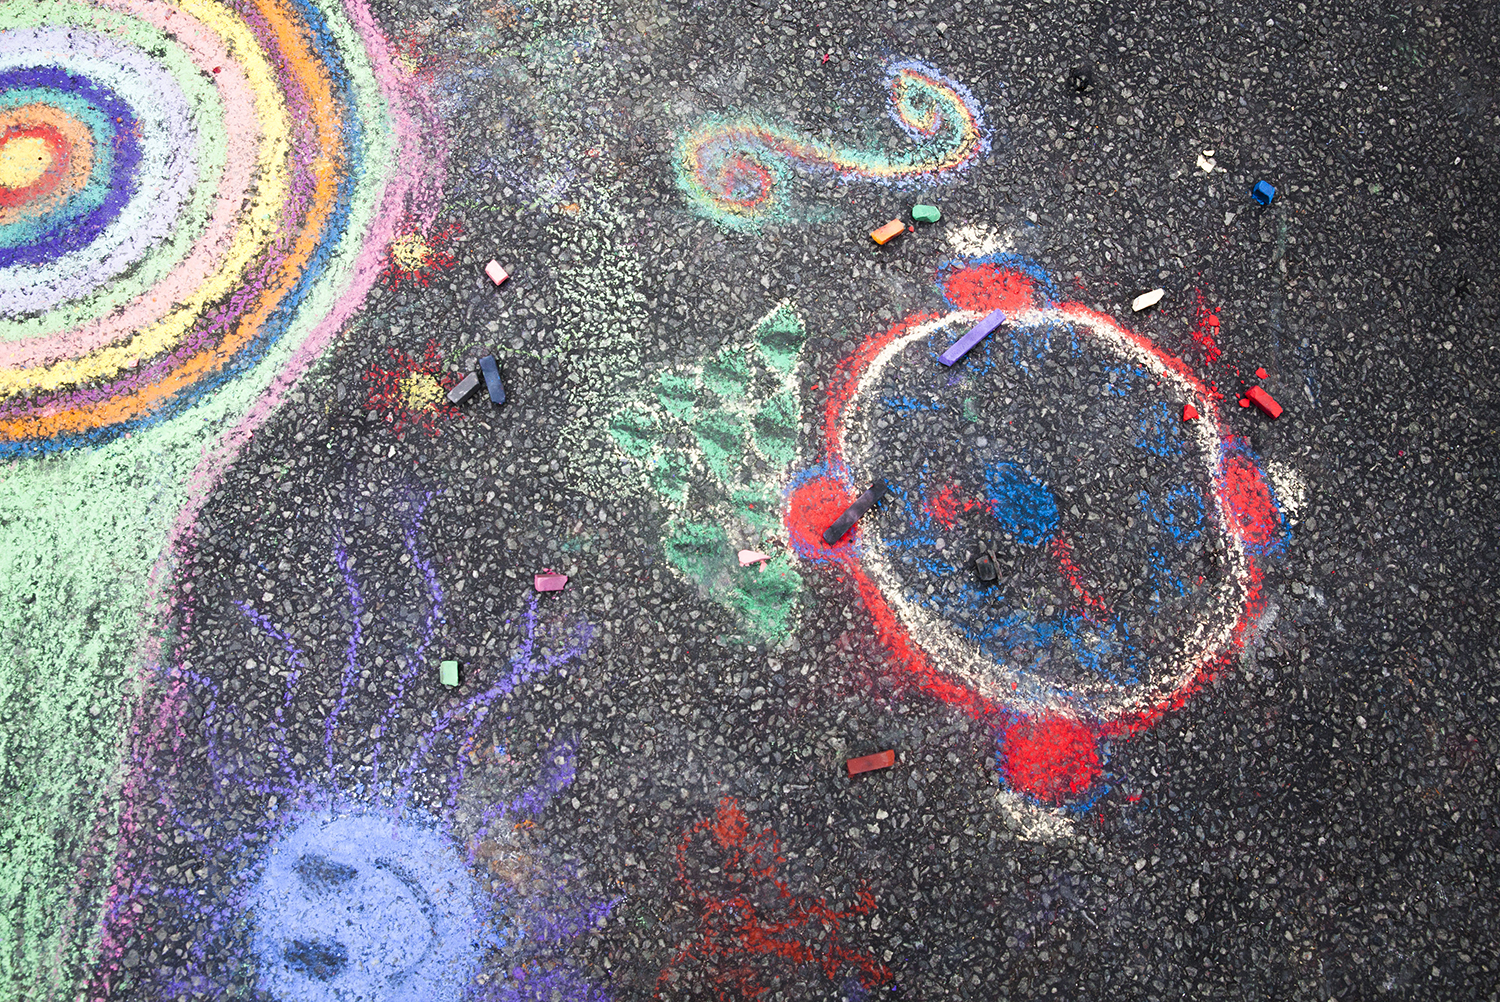 chalk_painting_day_18-09-16_helenalundquist_39